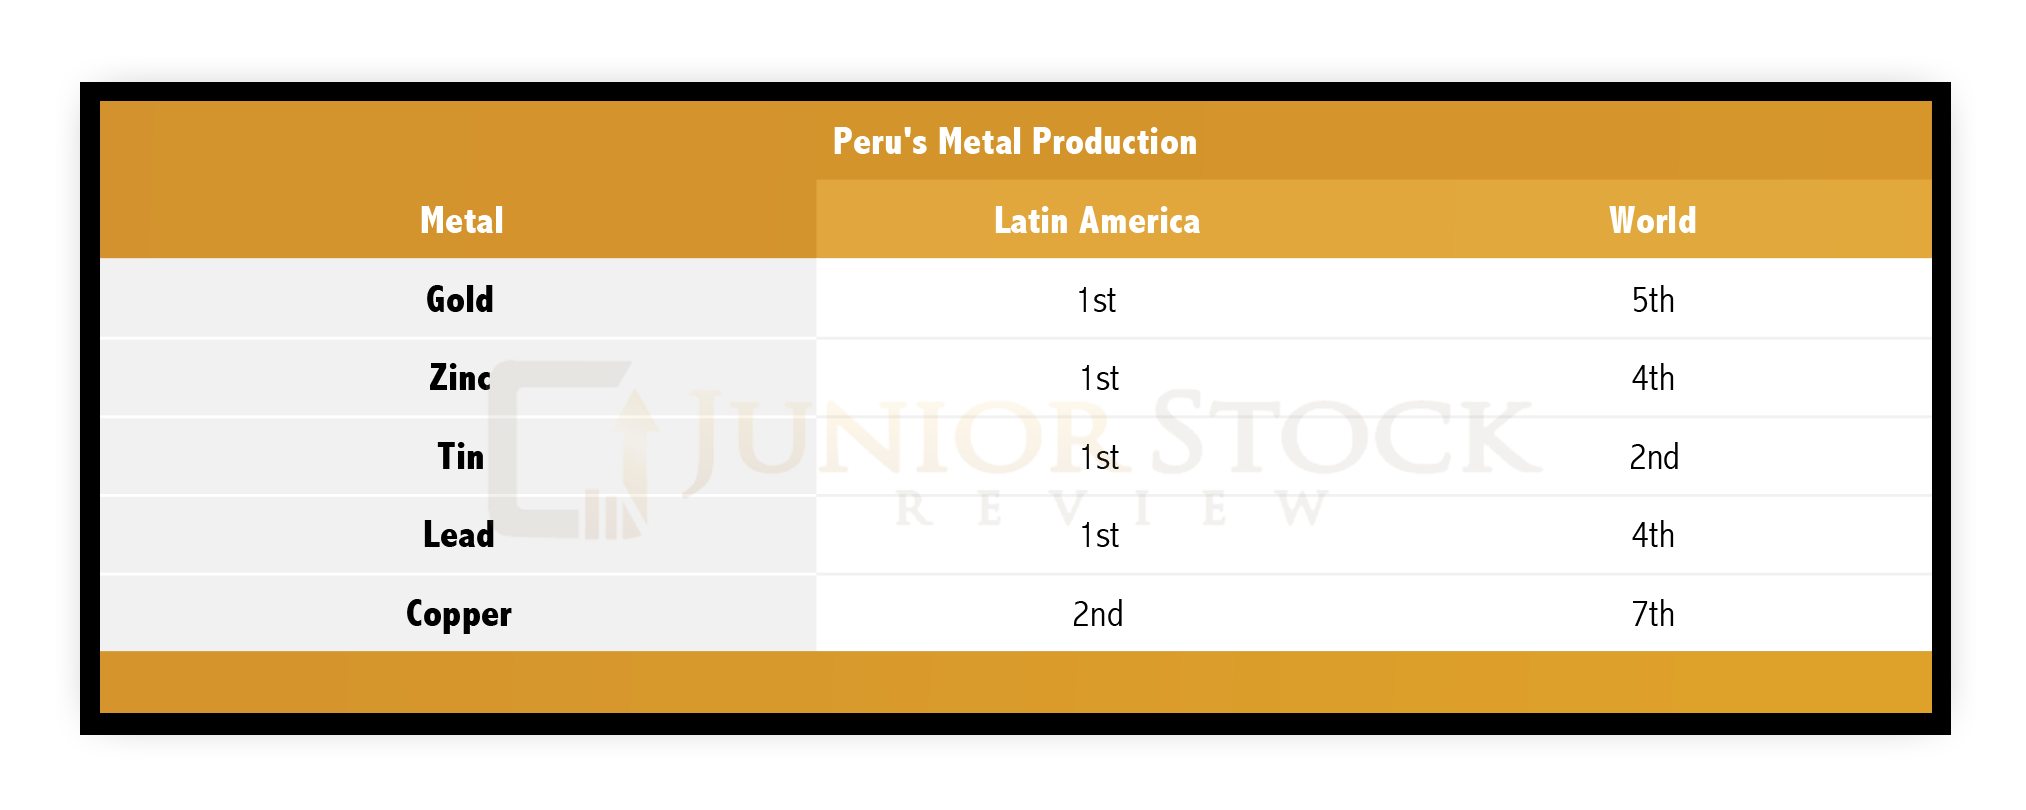 Peru Mining Production